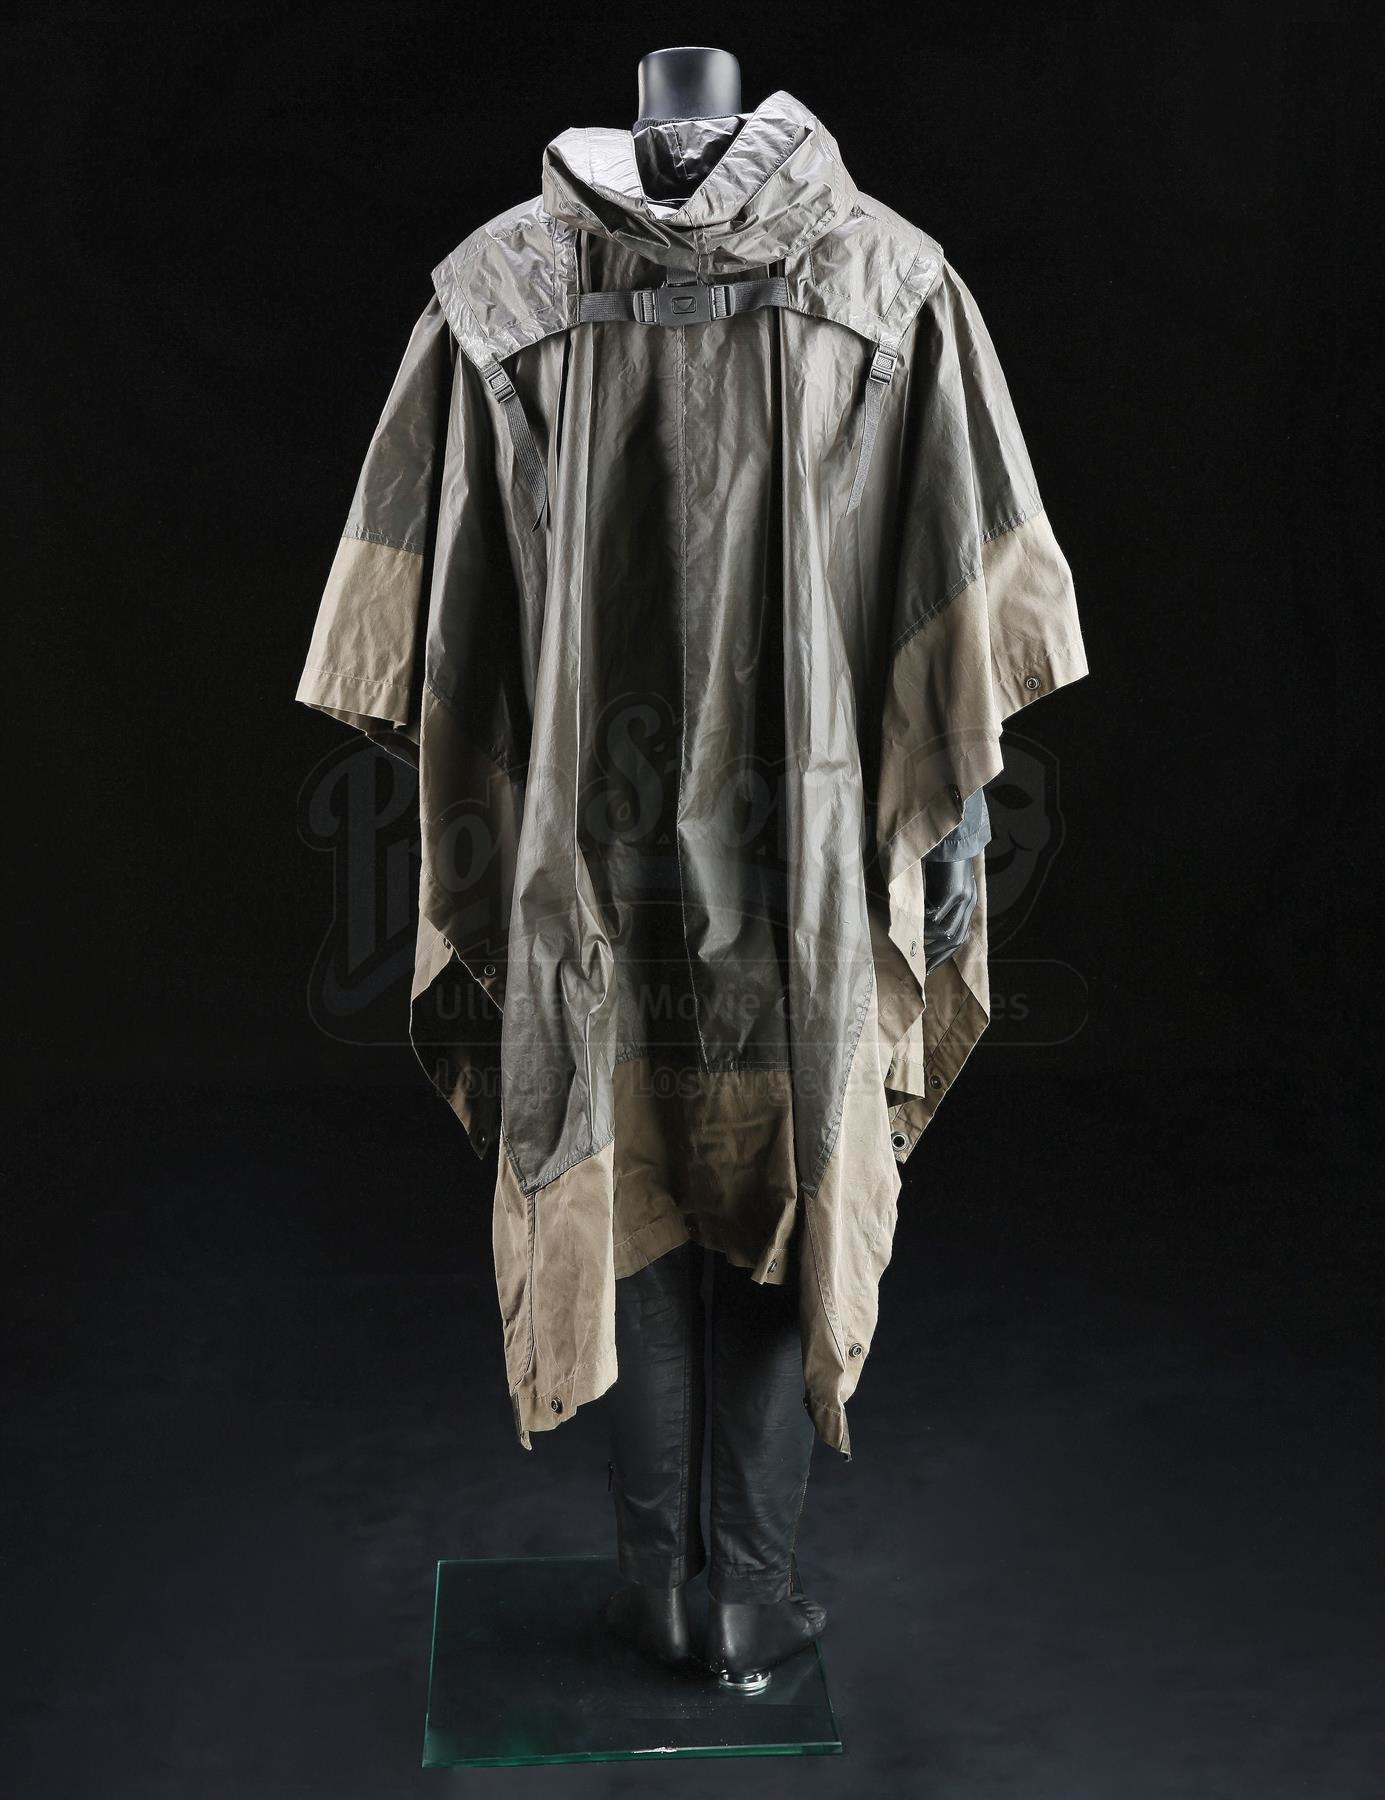 Major S Scarlett Johansson Cemetery Costume Current Price 2200 Ghost In The Shell Costumes Ghost